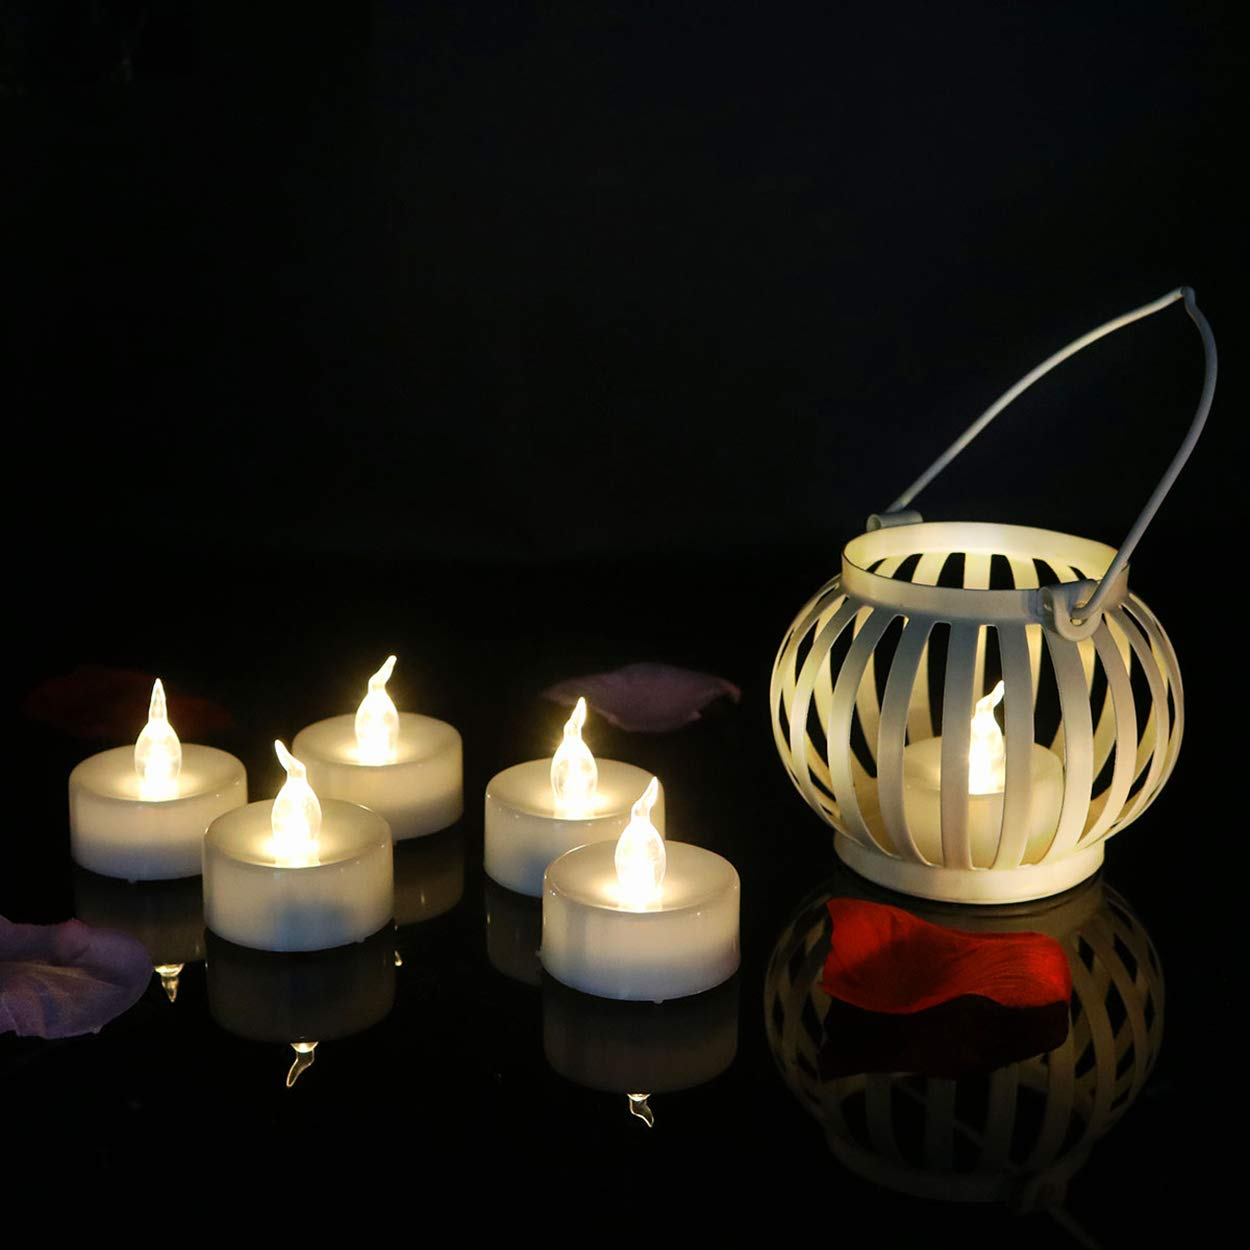 Beauty Collector 24pcs Tea Lights Glitter Flameless Led Candles Flickering Battery Operated Tealights Warm White for Holiday Festive Decorative Trees